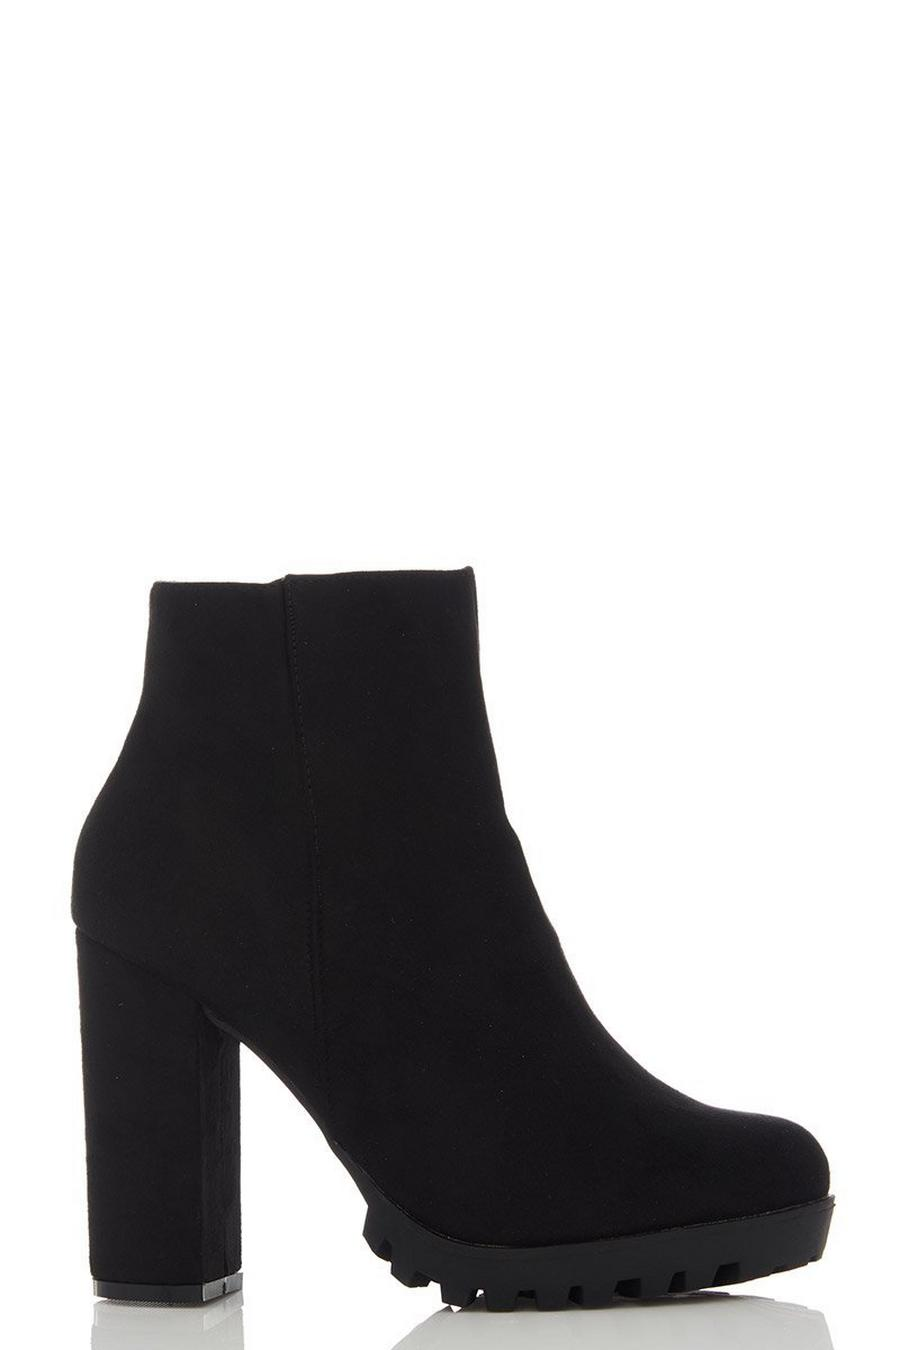 97e04d584f0 Black Faux Suede Chunky Heel Ankle Boots